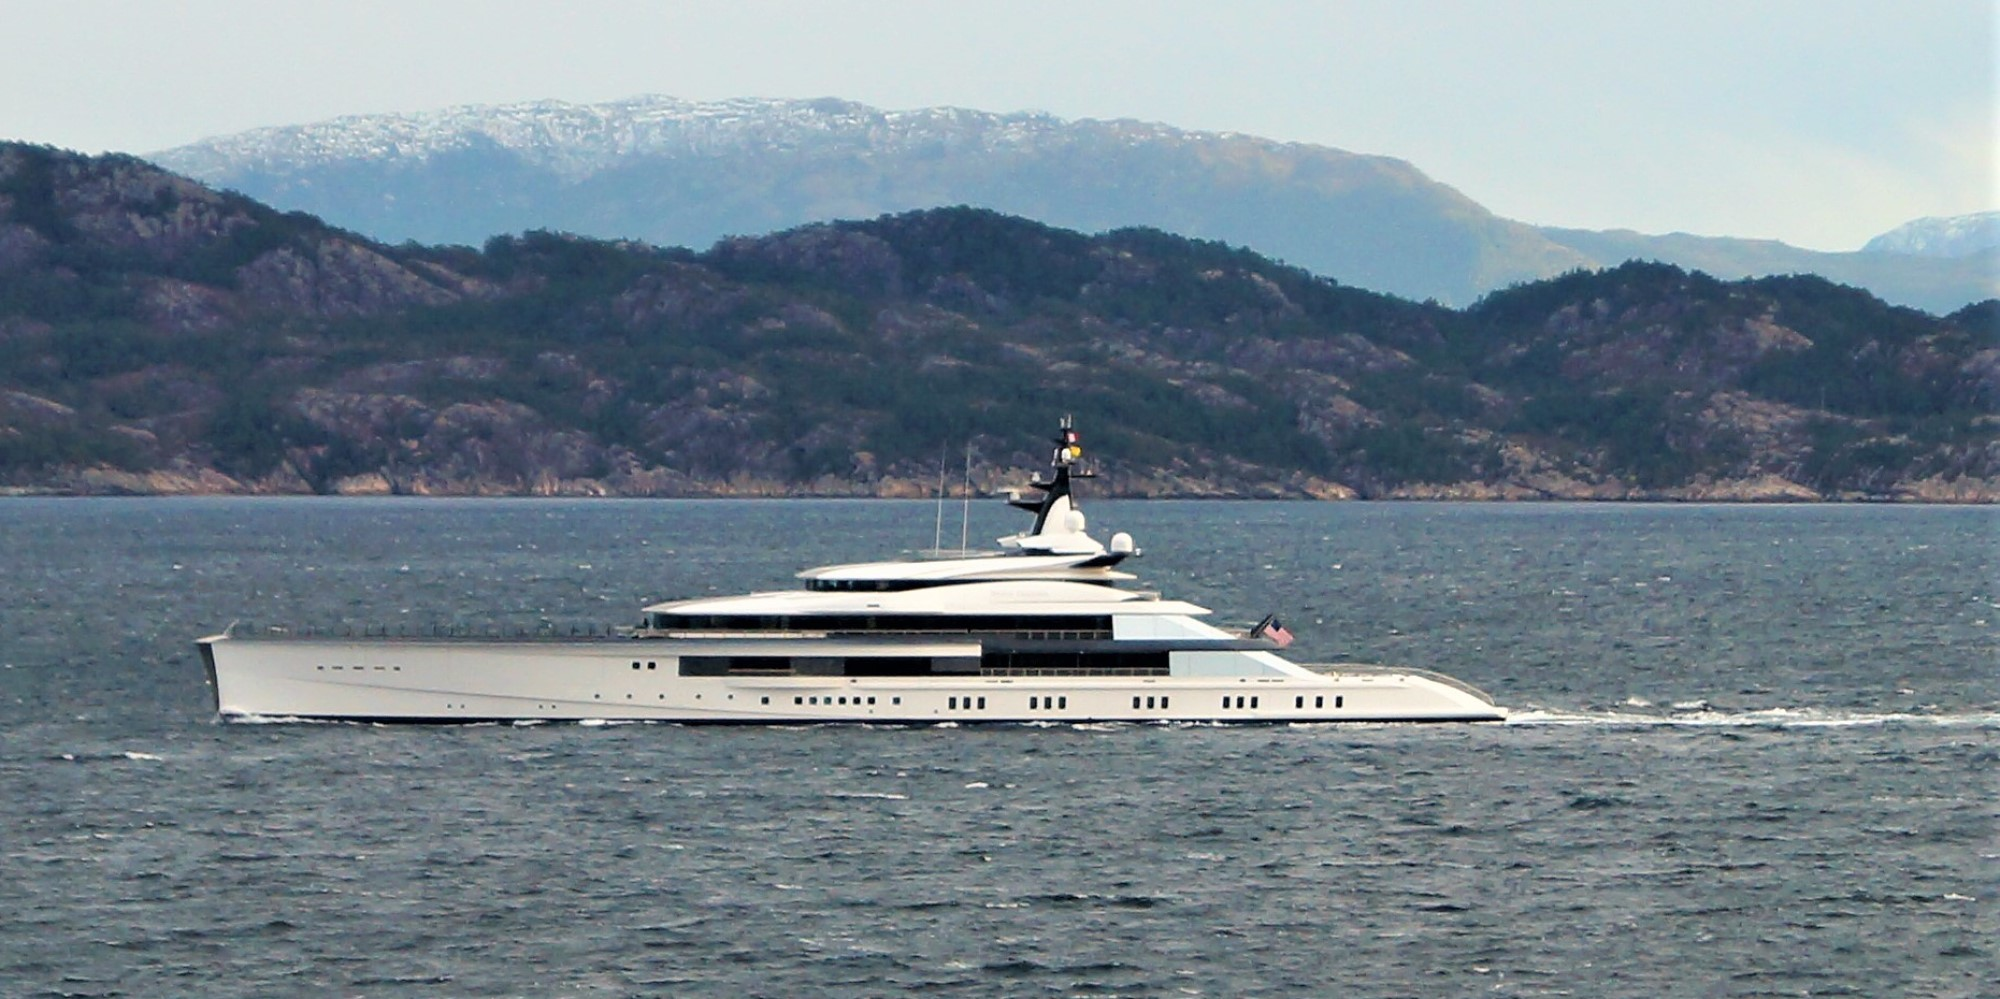 Should our waters have all these American yachts in them?